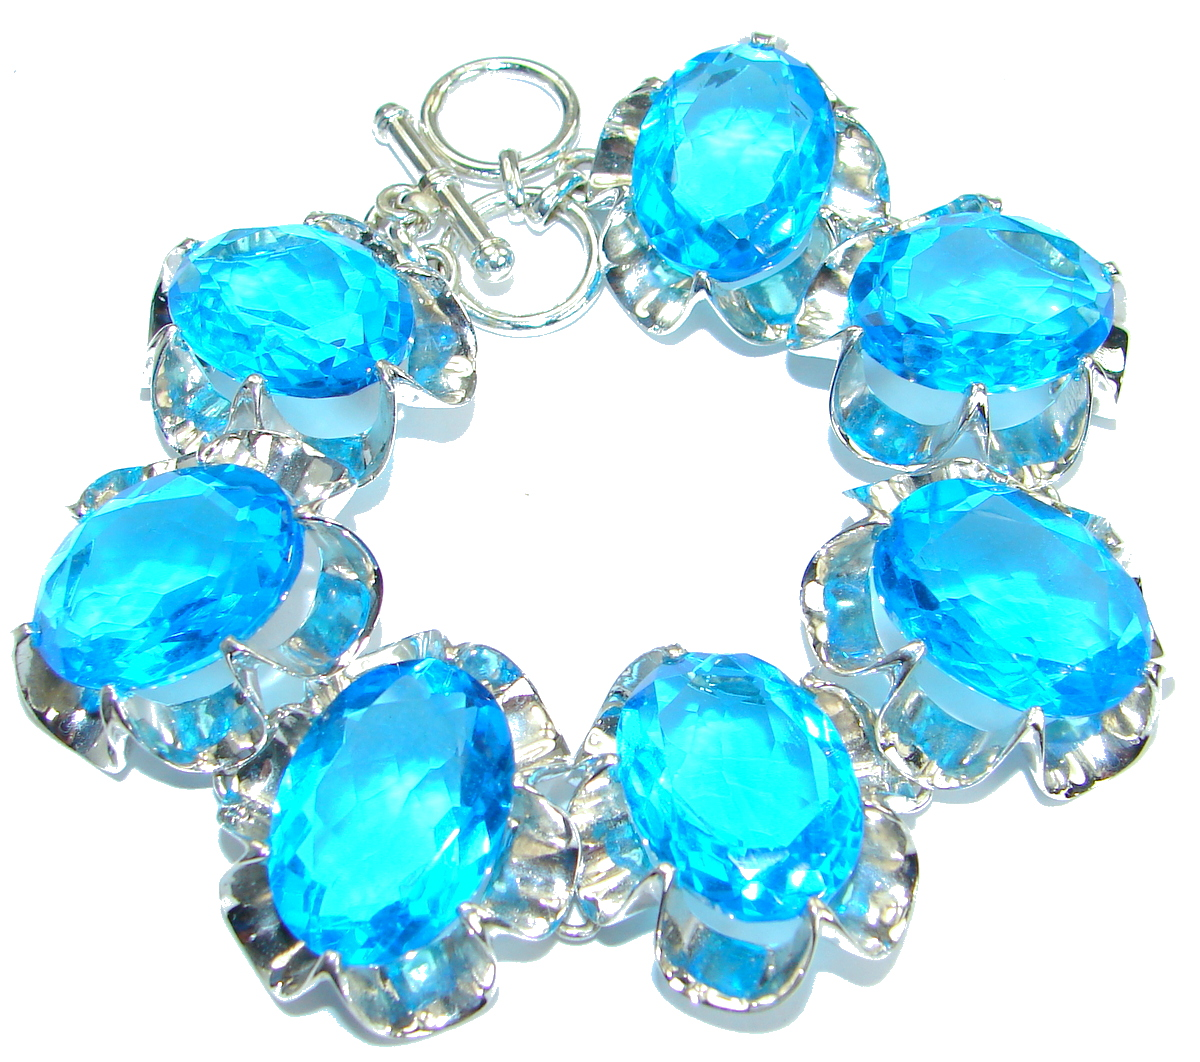 Huge Rich Blue Ocean Quartz .925 Sterling Silver handmade Bracelet